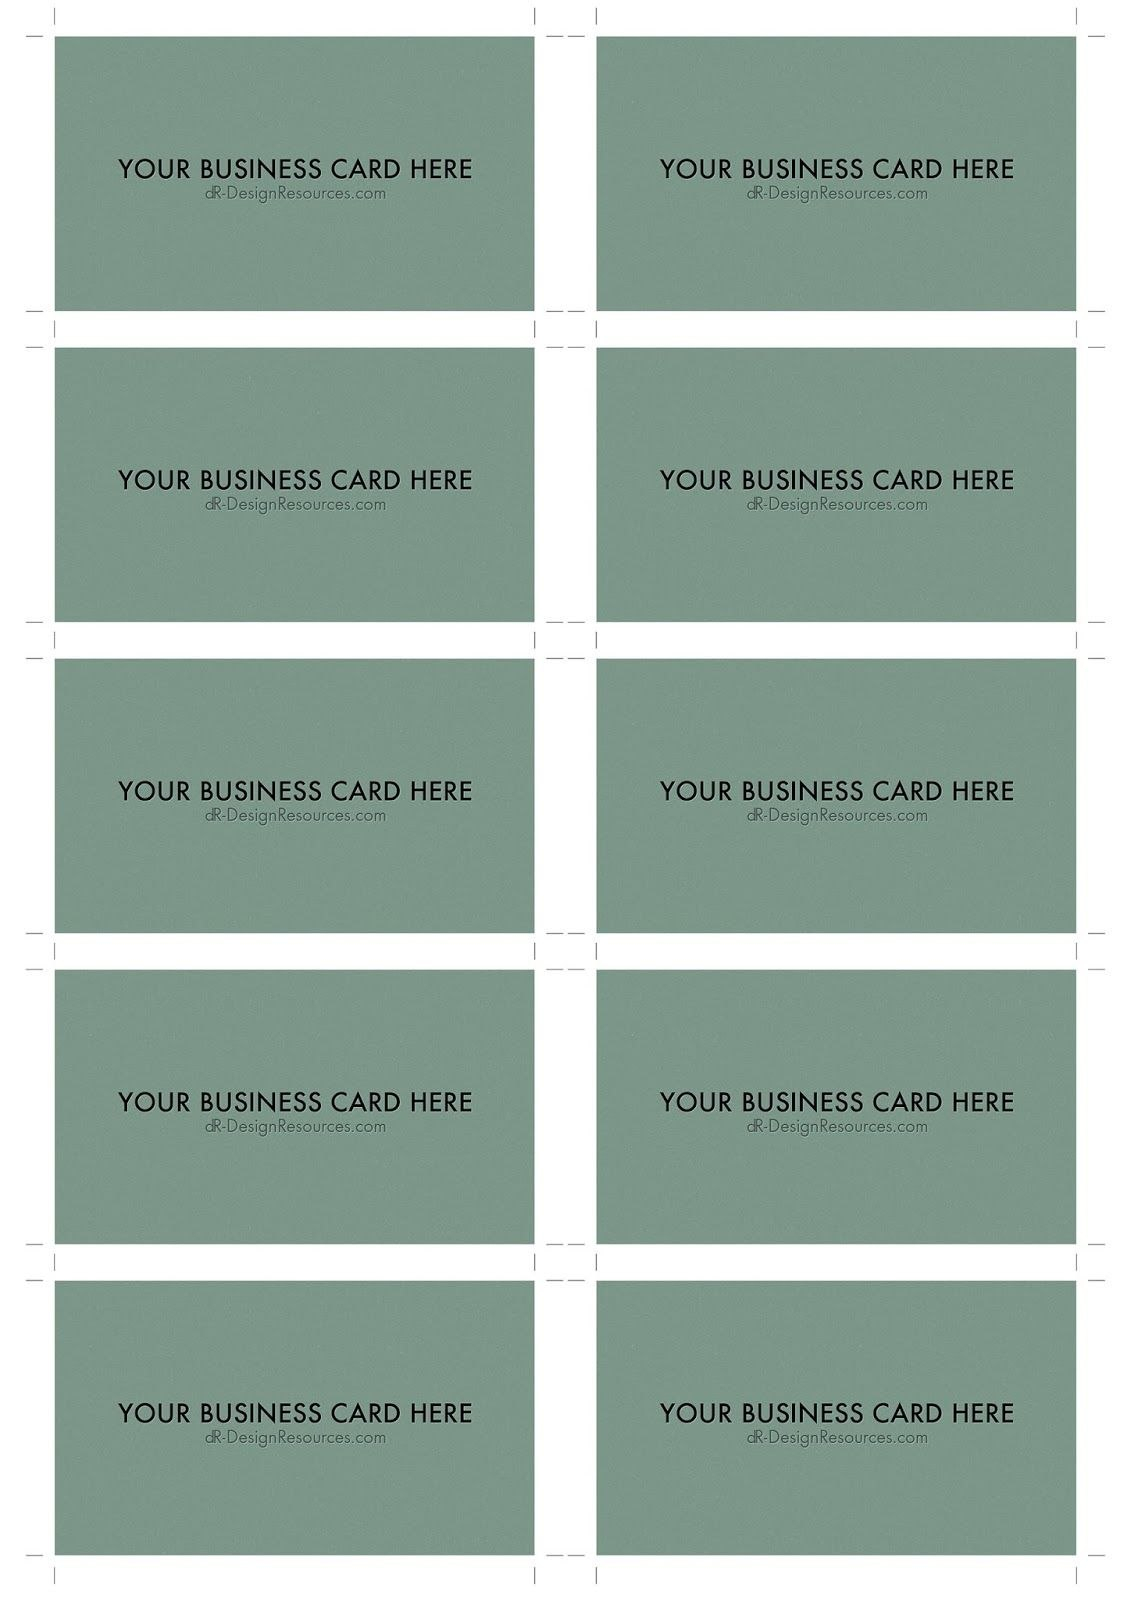 A Business Card Template Psd  Per Sheet  Business Cards Intended For Name Card Template Photoshop